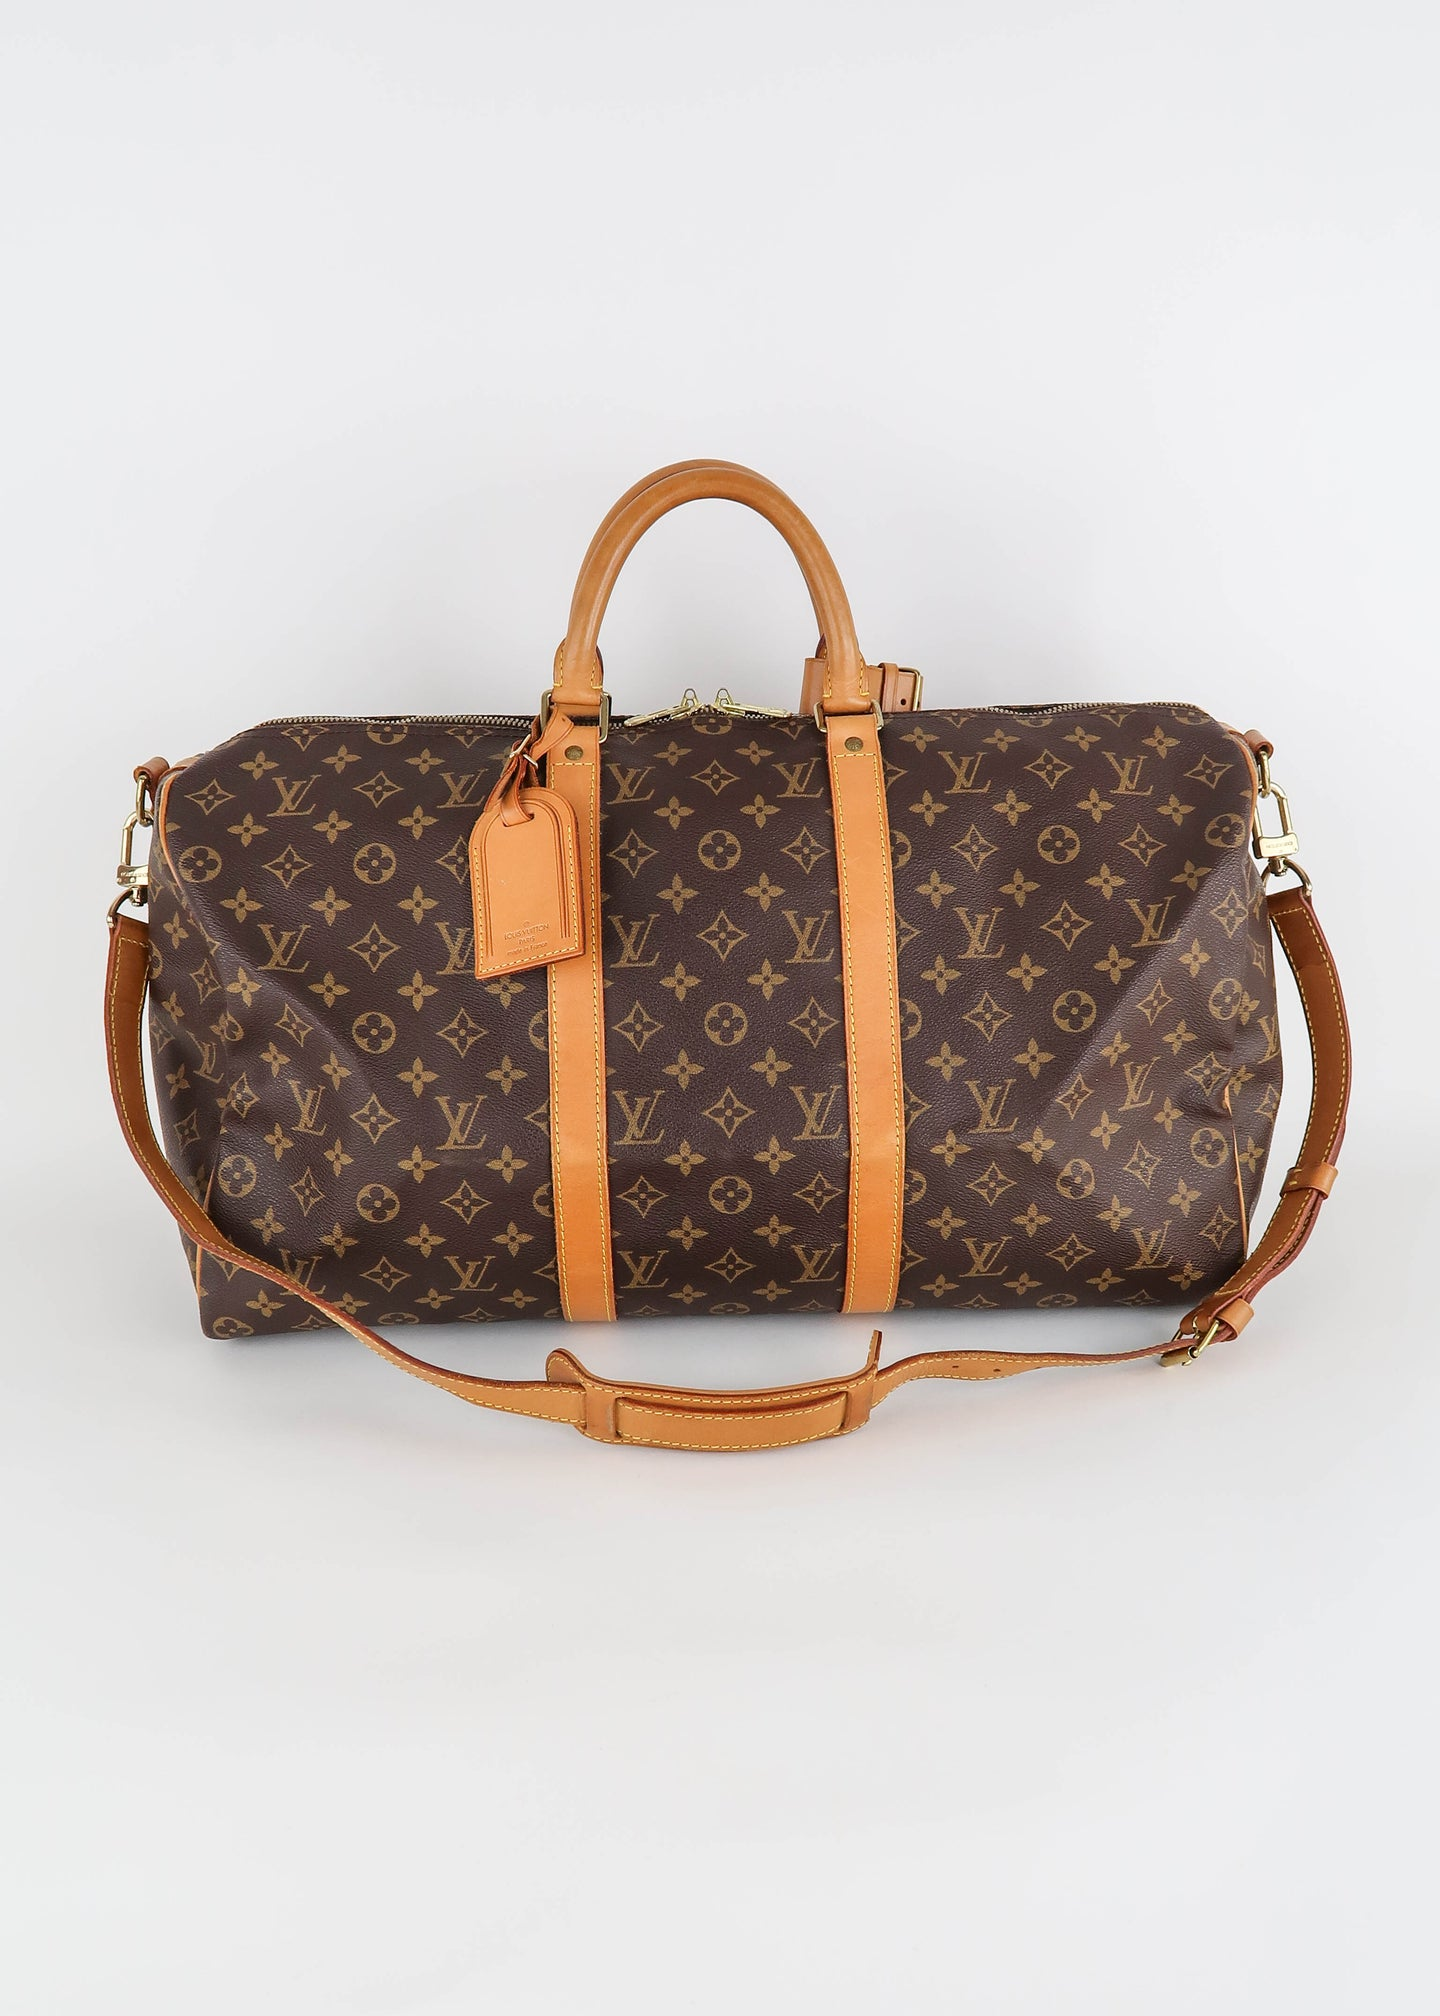 Louis Vuitton Monogram Keepall 50 Bandouliere